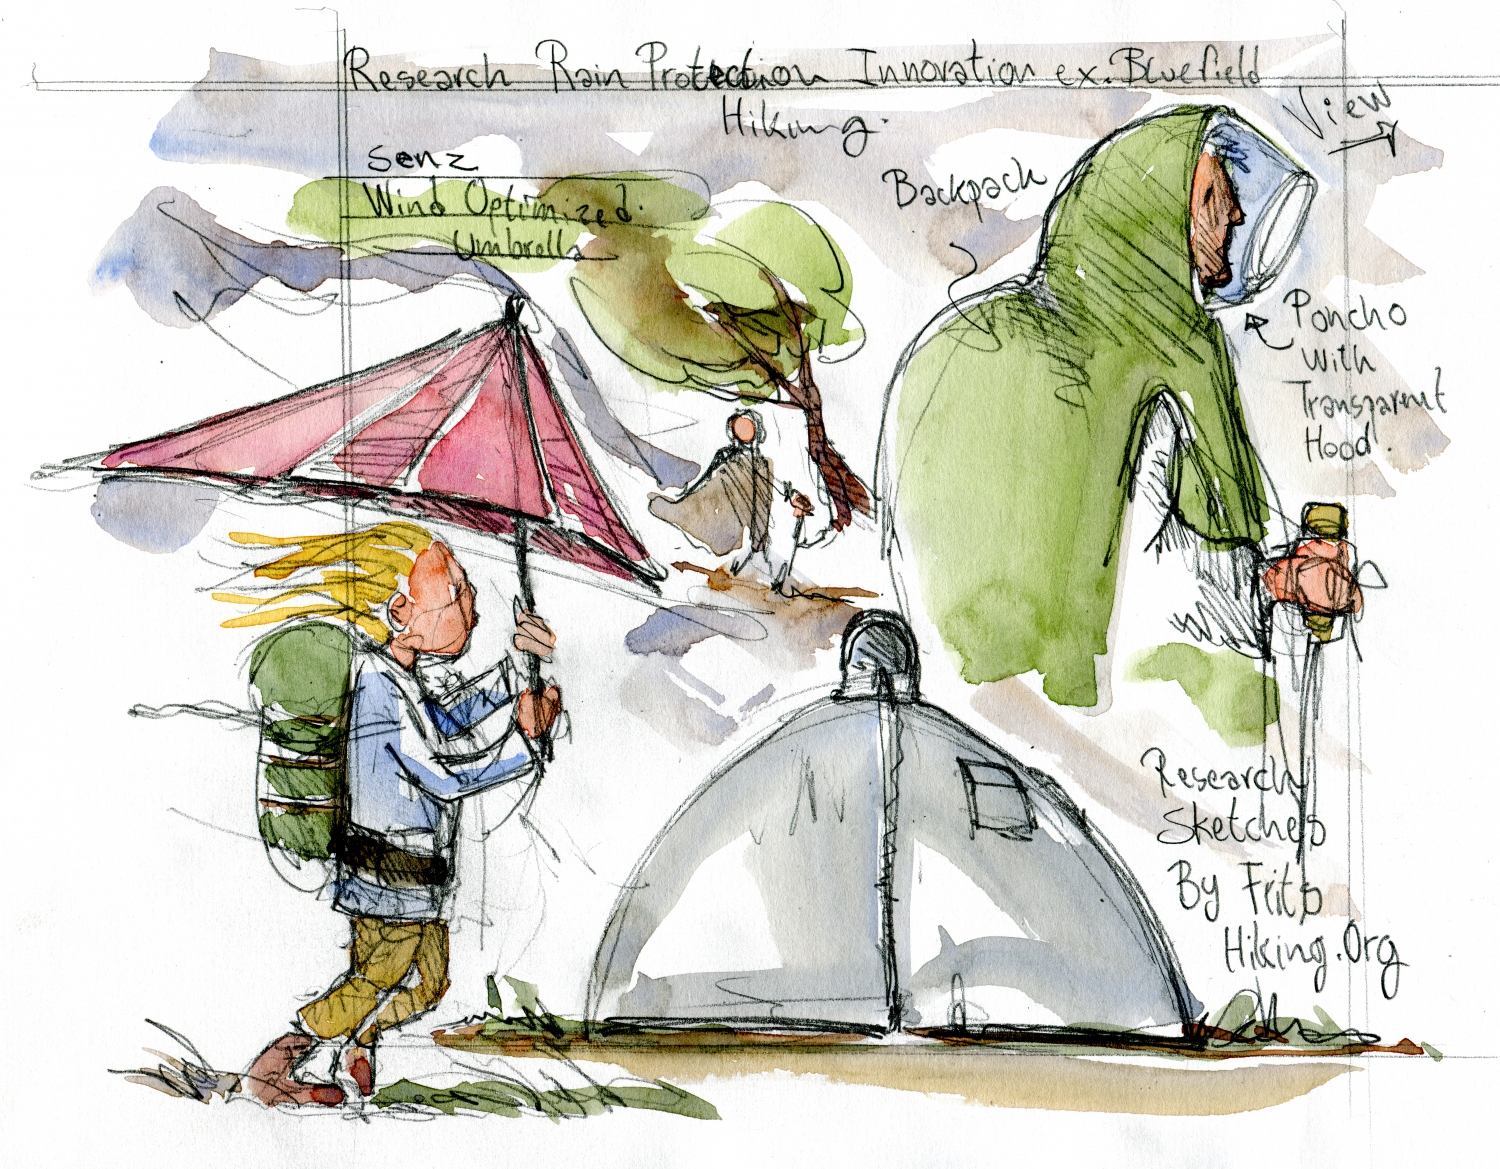 Pencil and watercolor sketches of Frits Ahlefeldt of designs to keep the rain out